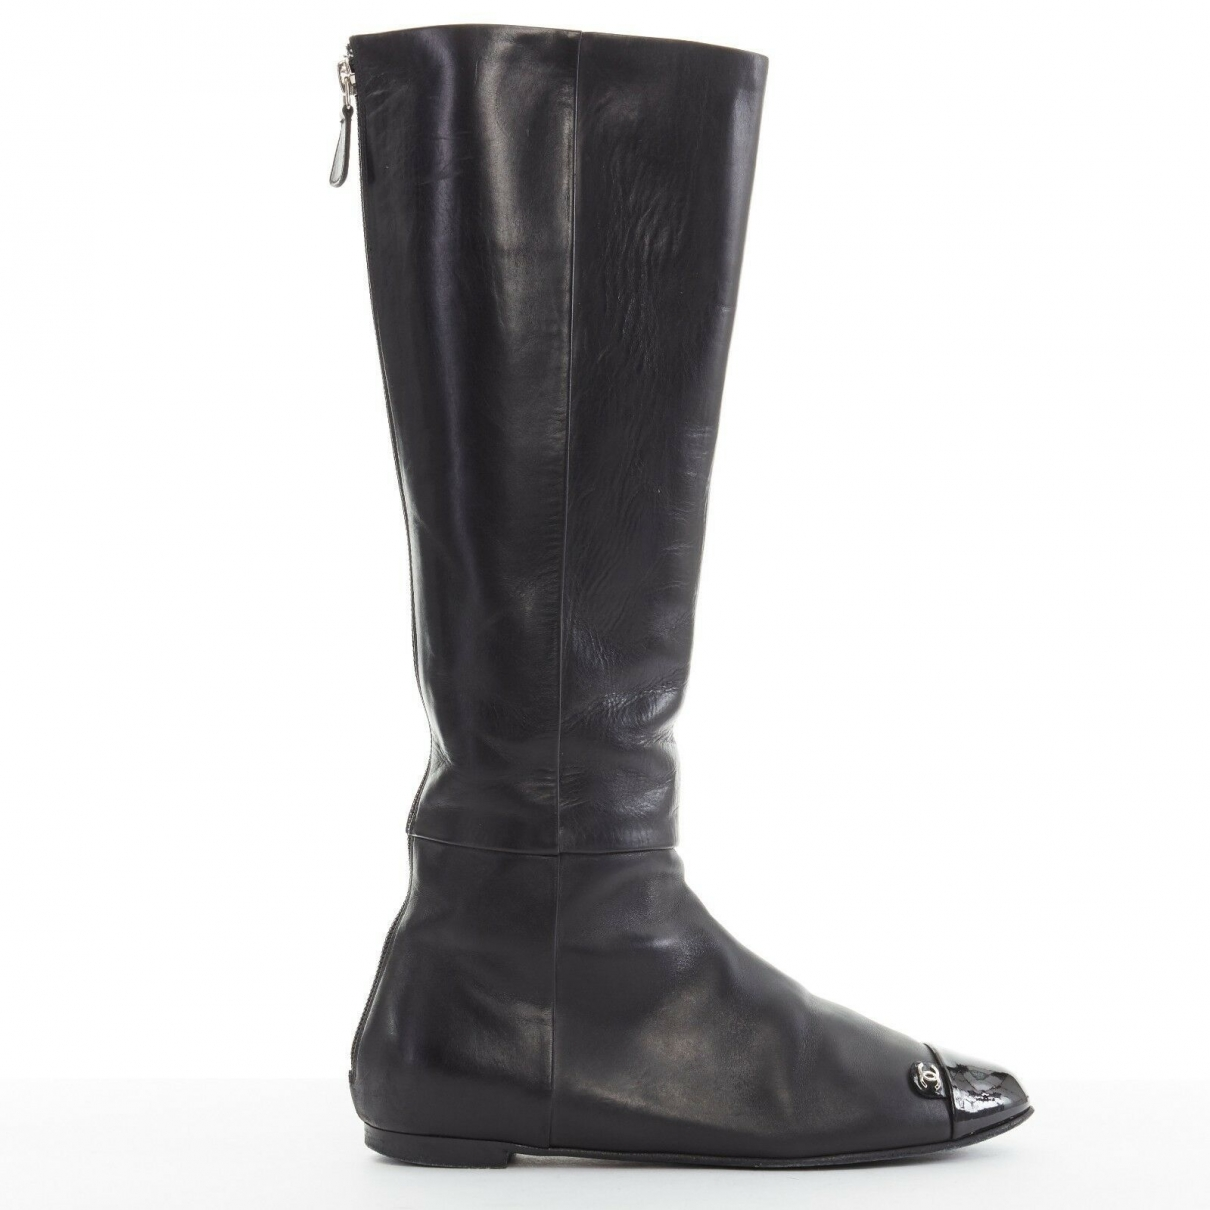 Chanel \N Black Leather Boots for Women 36EU